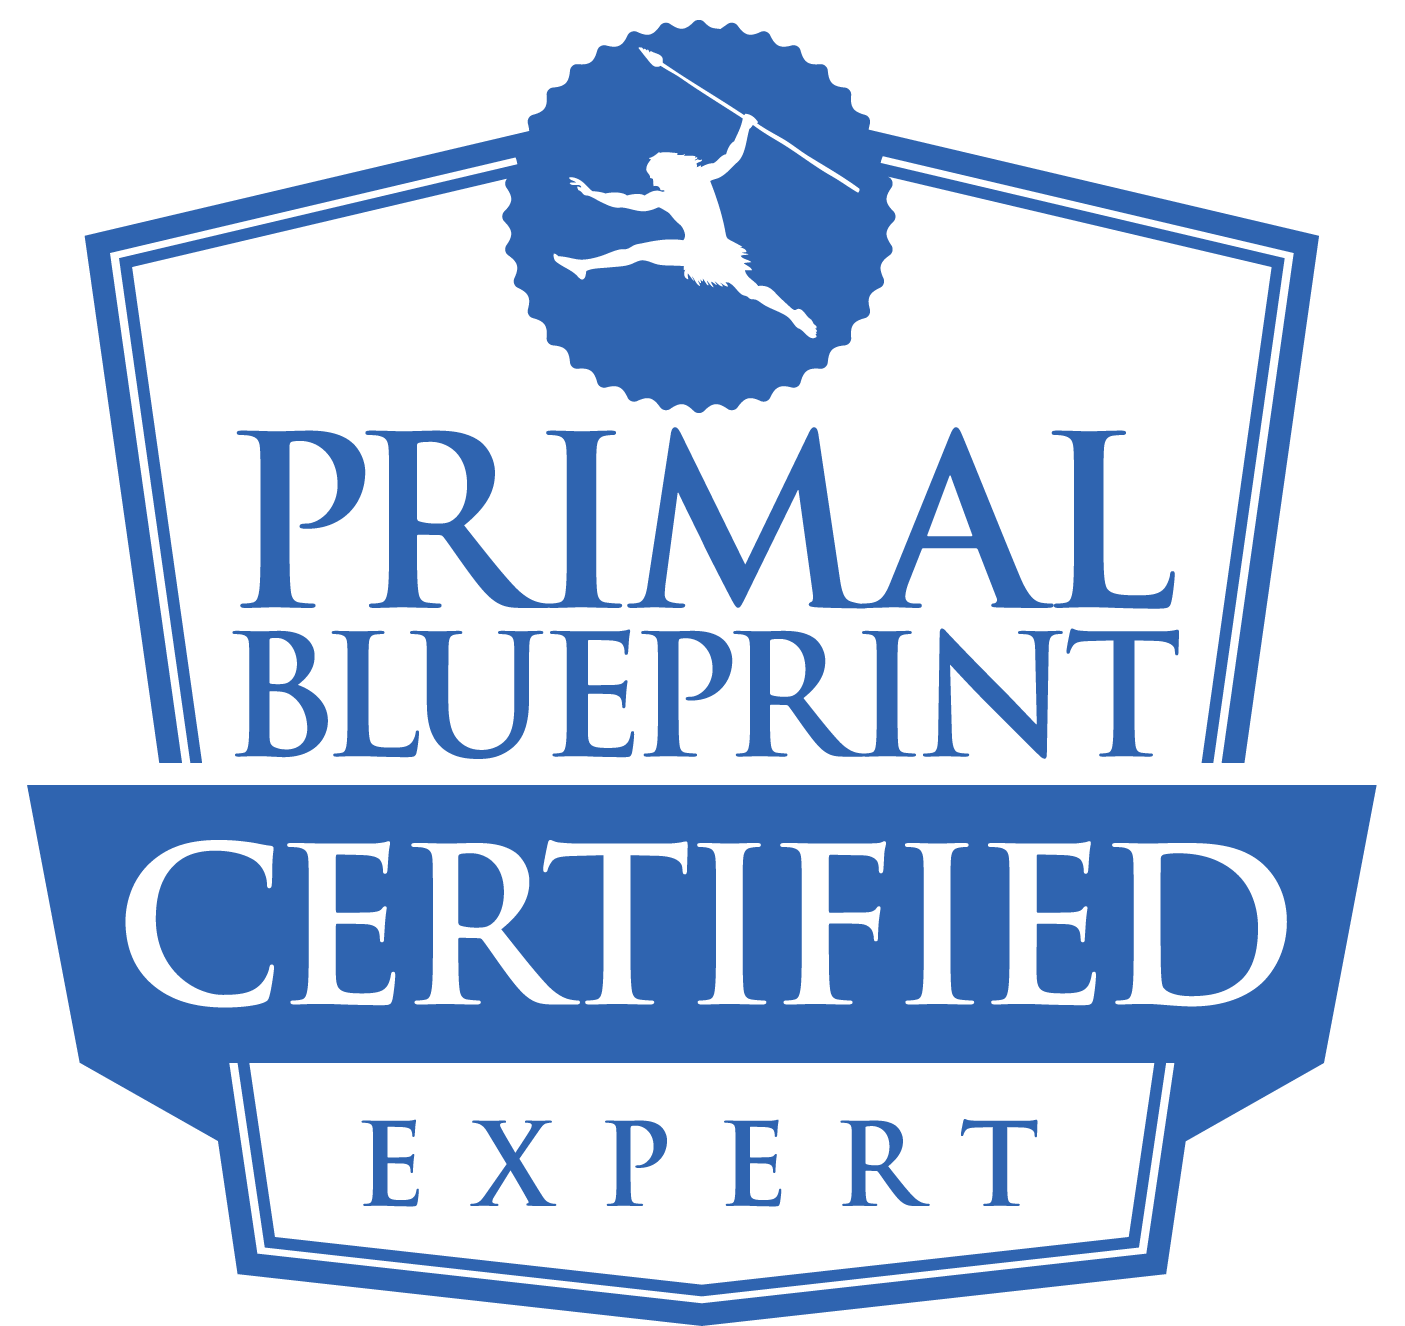 My Take On The Primal Blueprint Certification Beyond The Bite